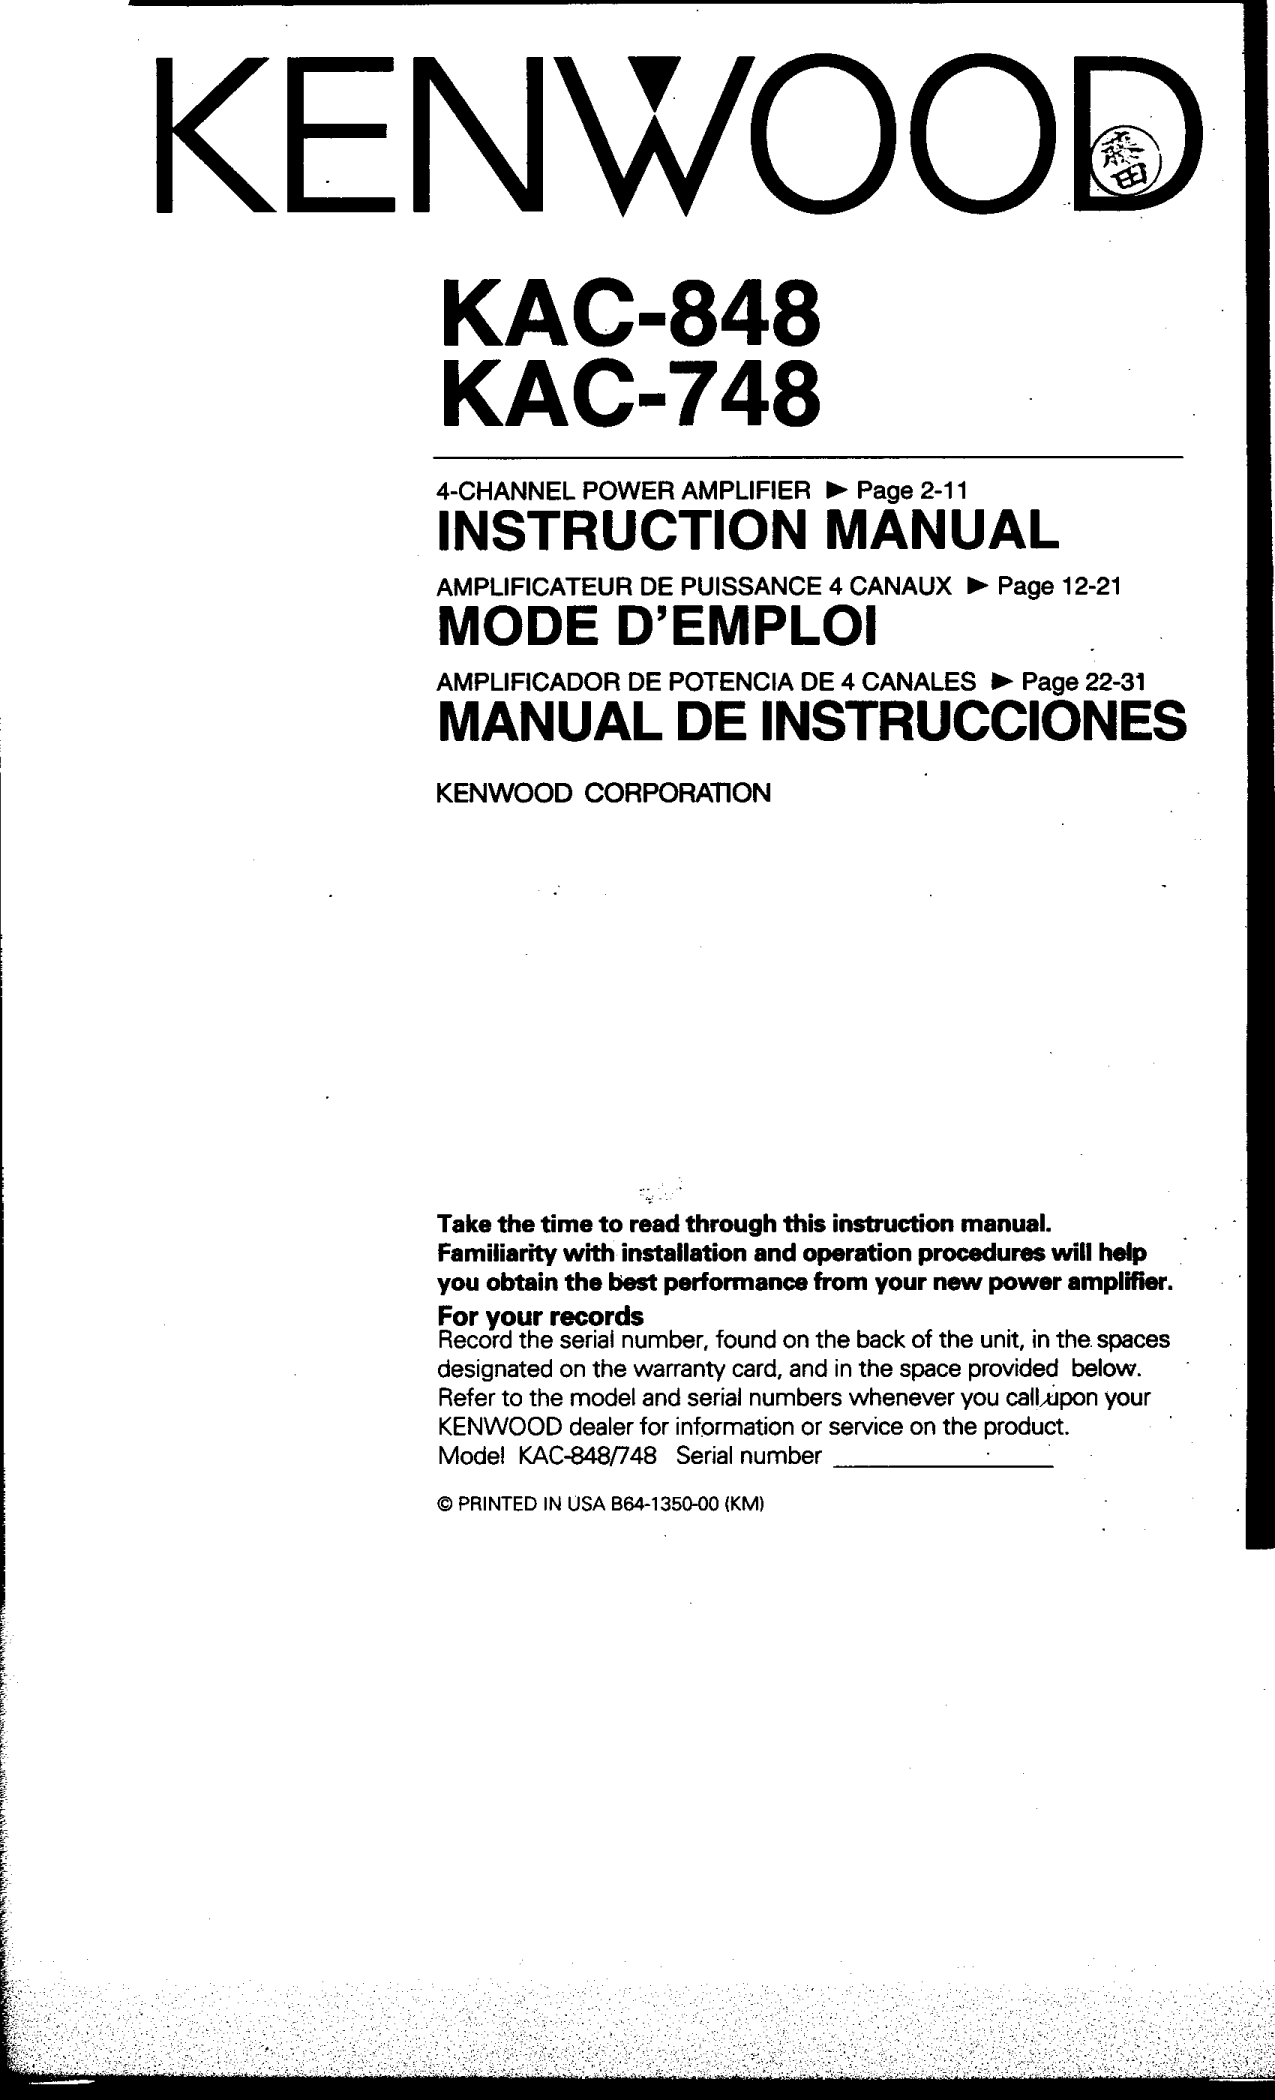 kac748.pdf 0 download free pdf for kenwood kac 848 car amplifier manual kenwood kac 7205 wiring diagram at alyssarenee.co